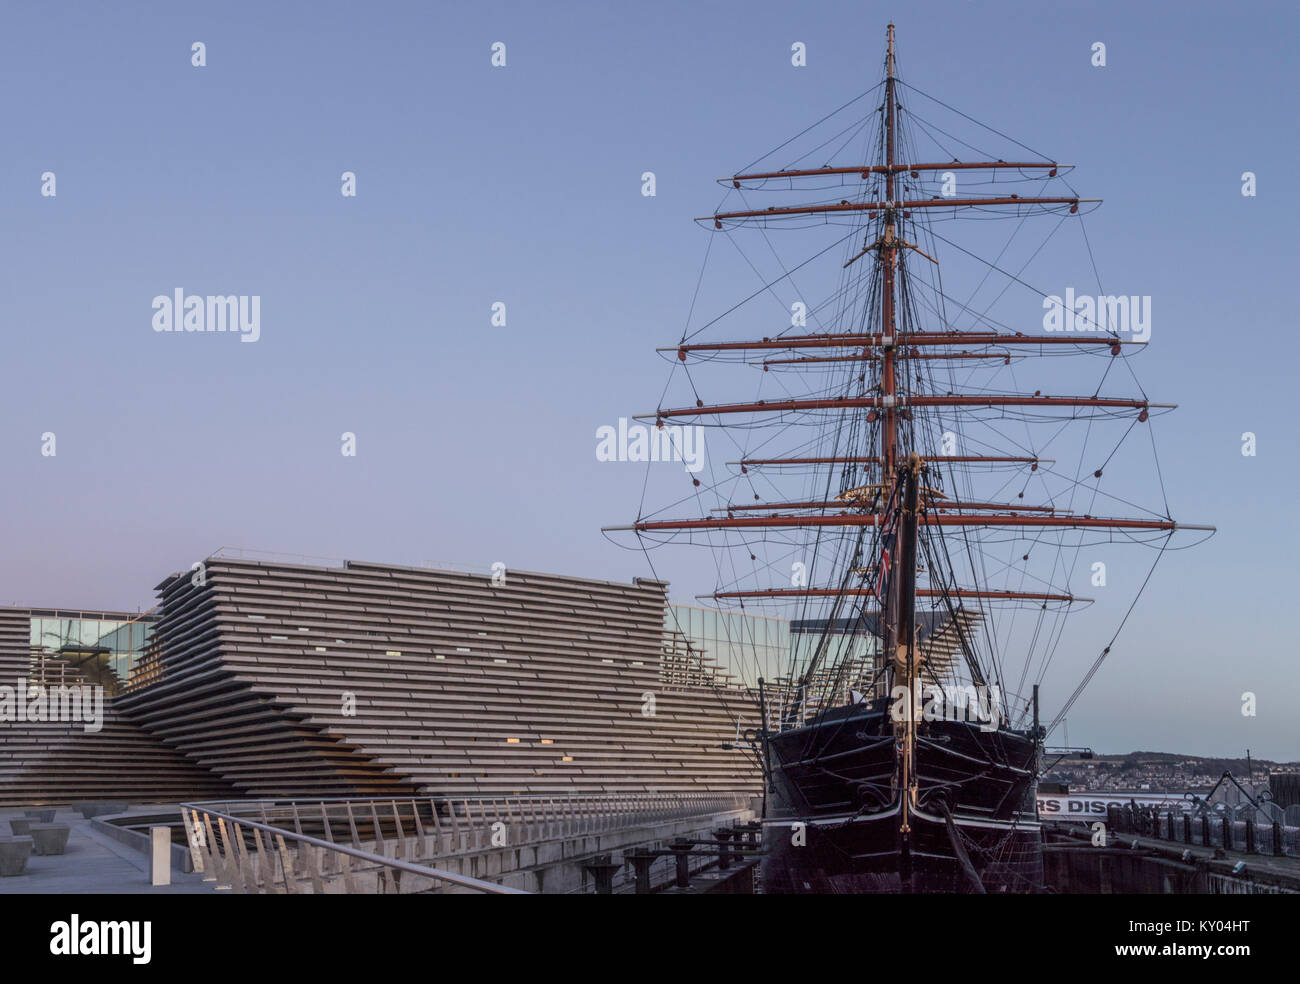 The V&A design museum has been sited next to the RRS Discovery as part of Dundee's waterfront development, Scotland, Stock Photo